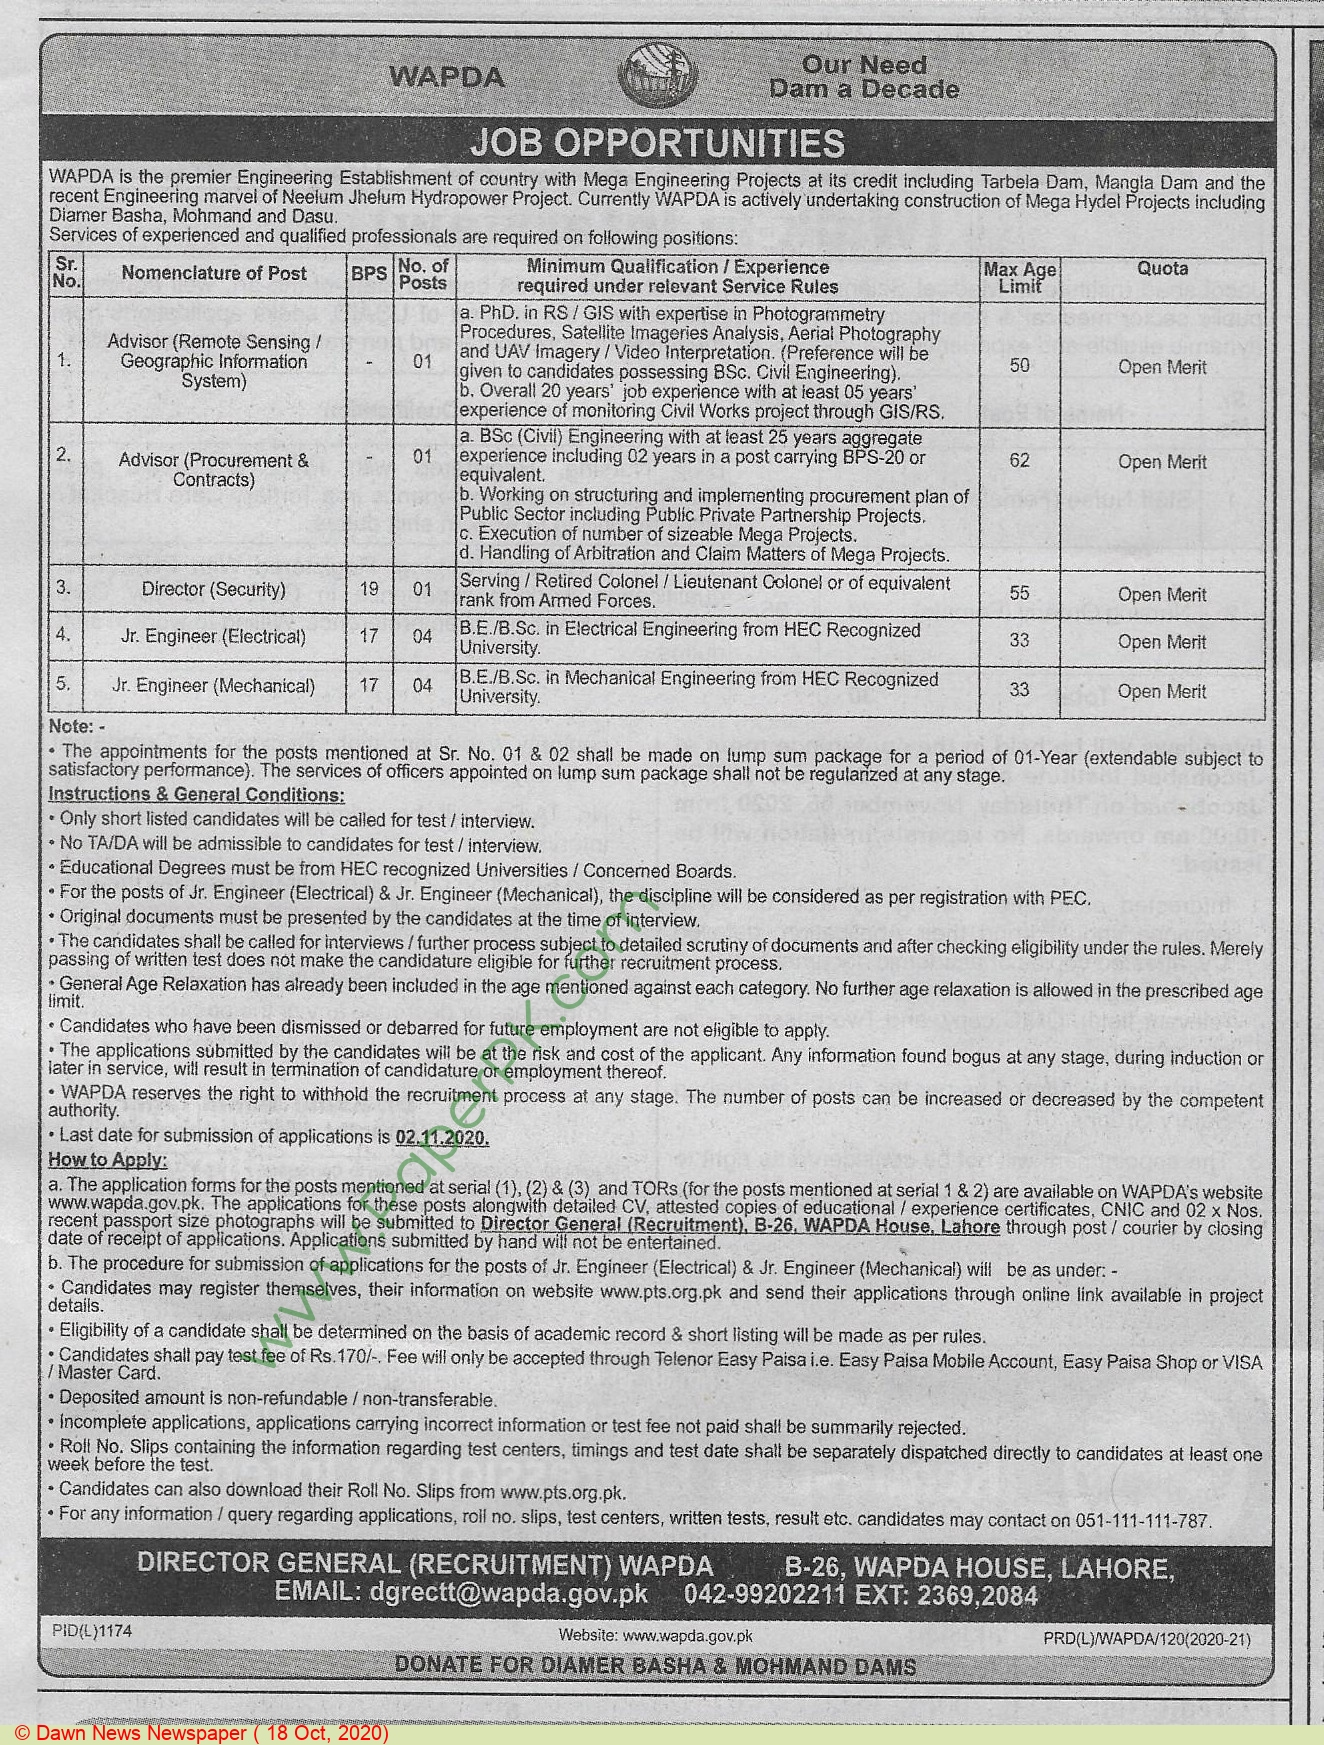 Water and Power Development Authority jobs newspaper ad for Director Security in Lahore